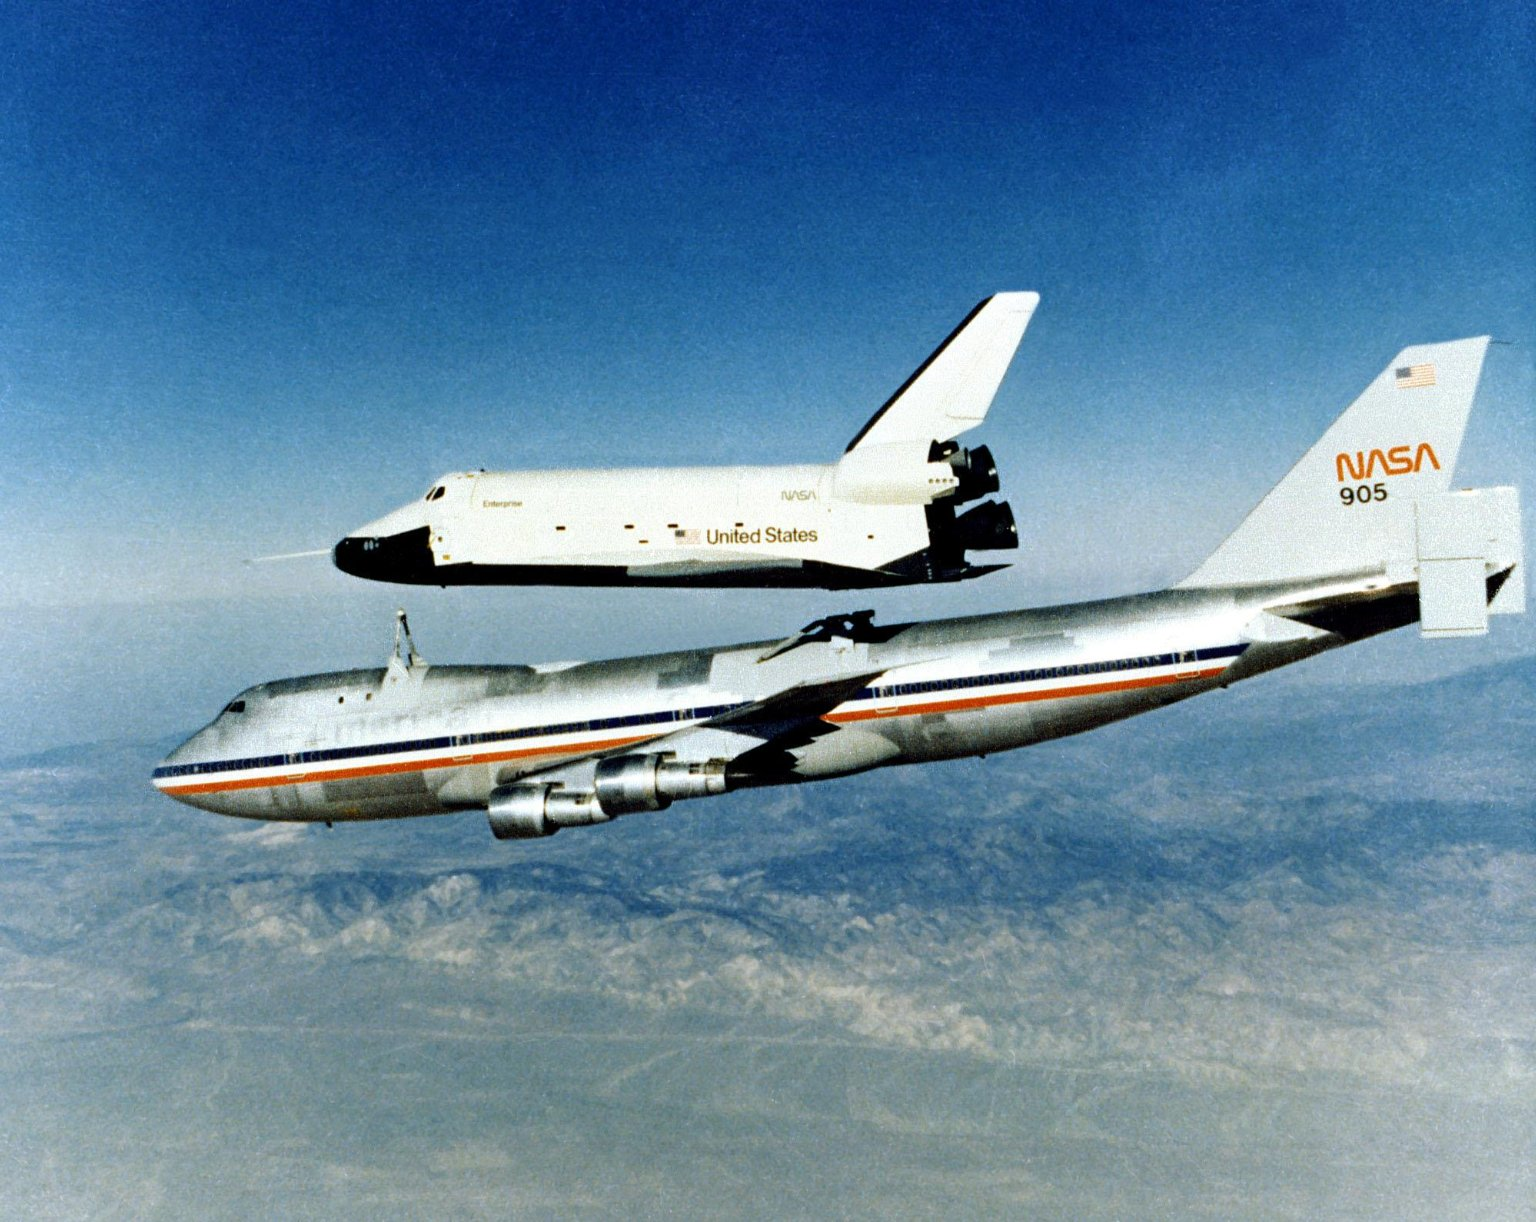 Approach and Landing Tests, Space Shuttle Support